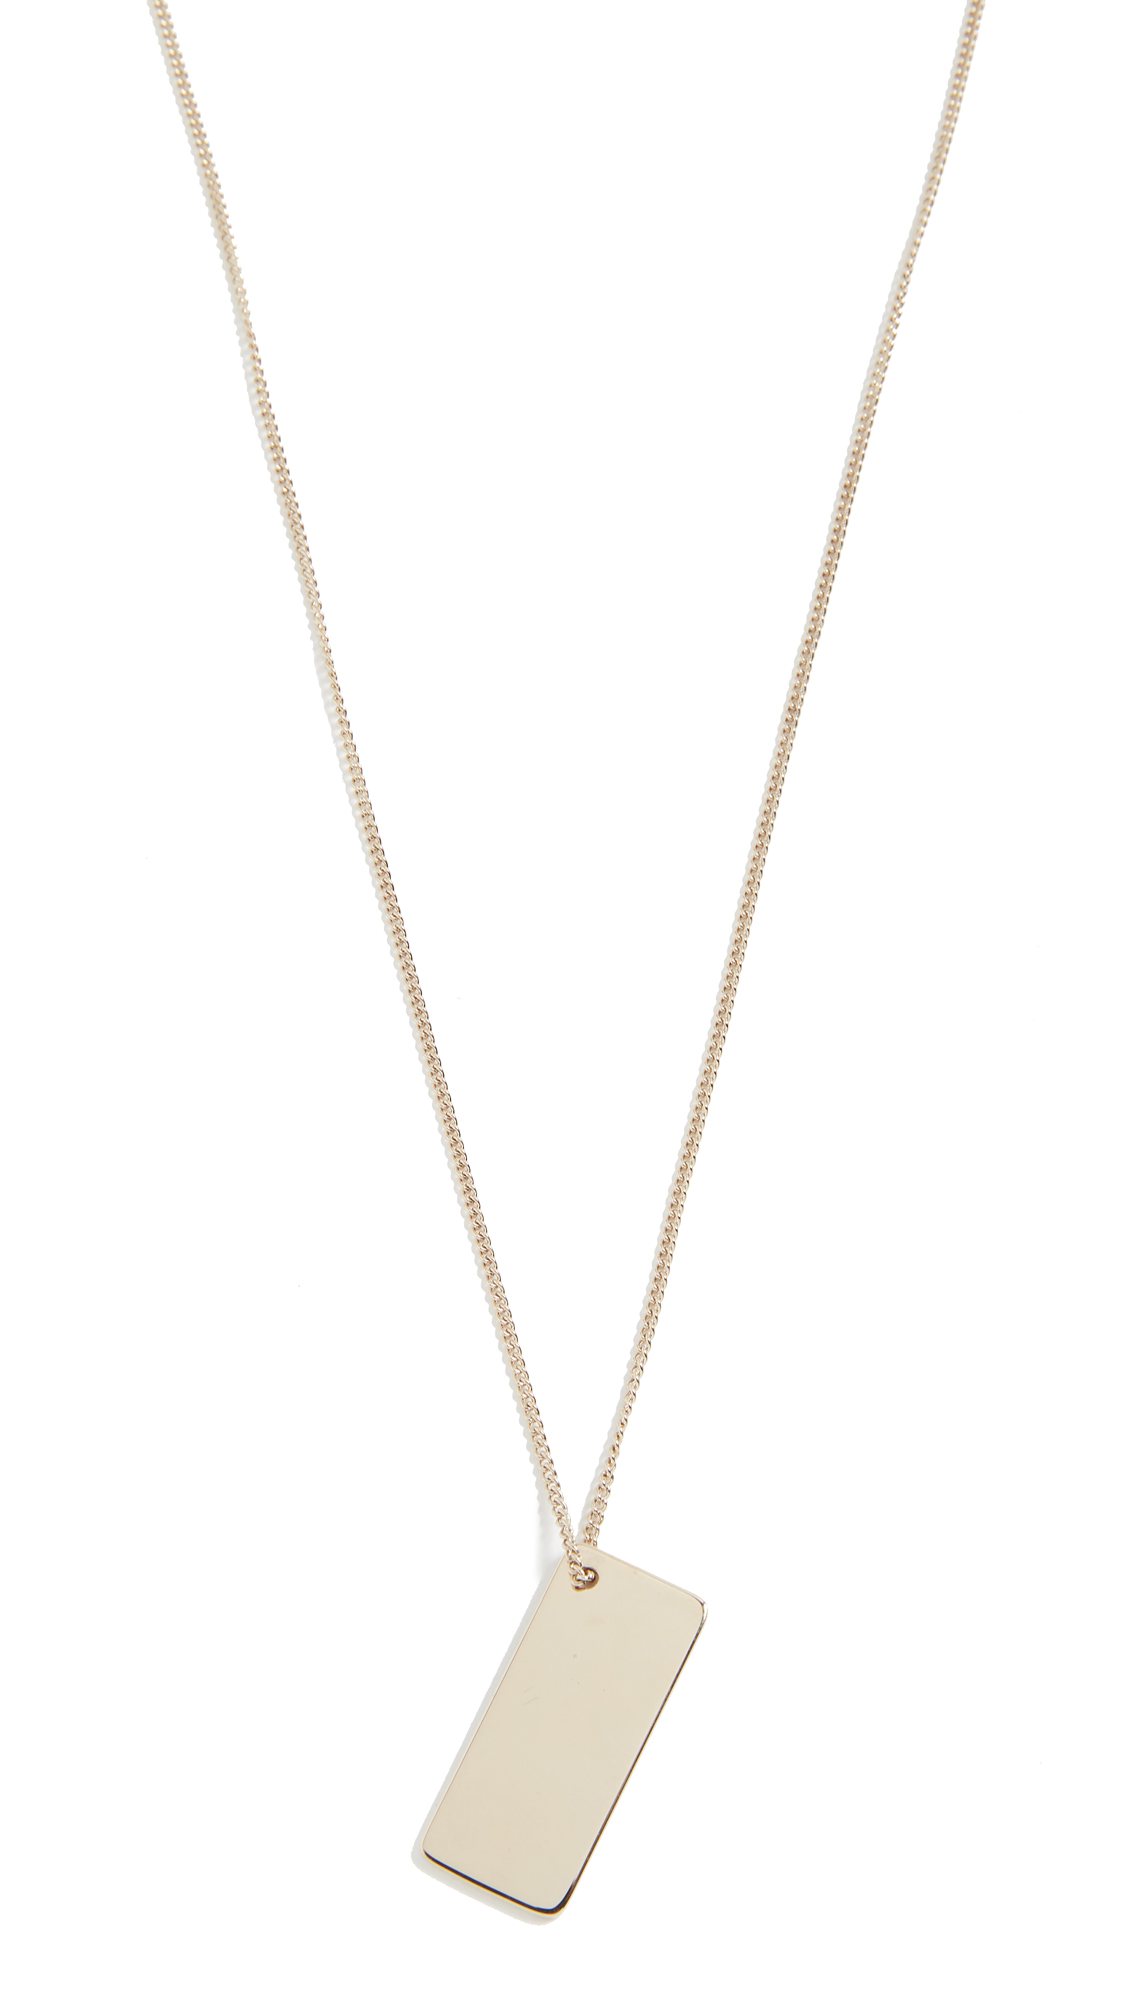 jewelry a c clint metallic necklace p product gallery apc lyst in normal gold